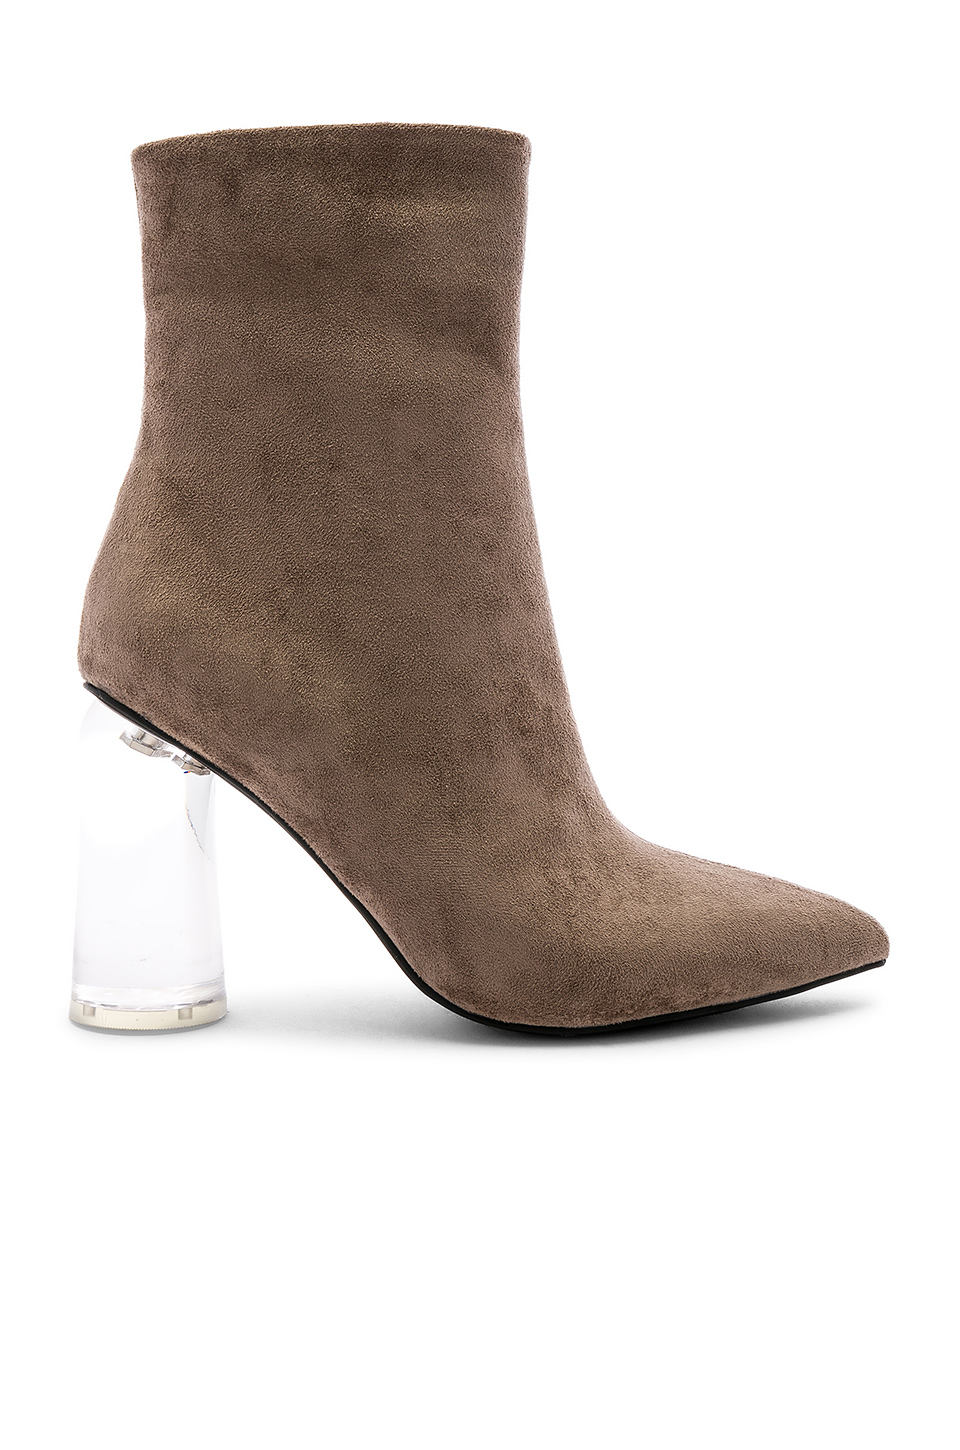 1972e51e63 Jeffrey Campbell Lustful Bootie In Taupe   ModeSens